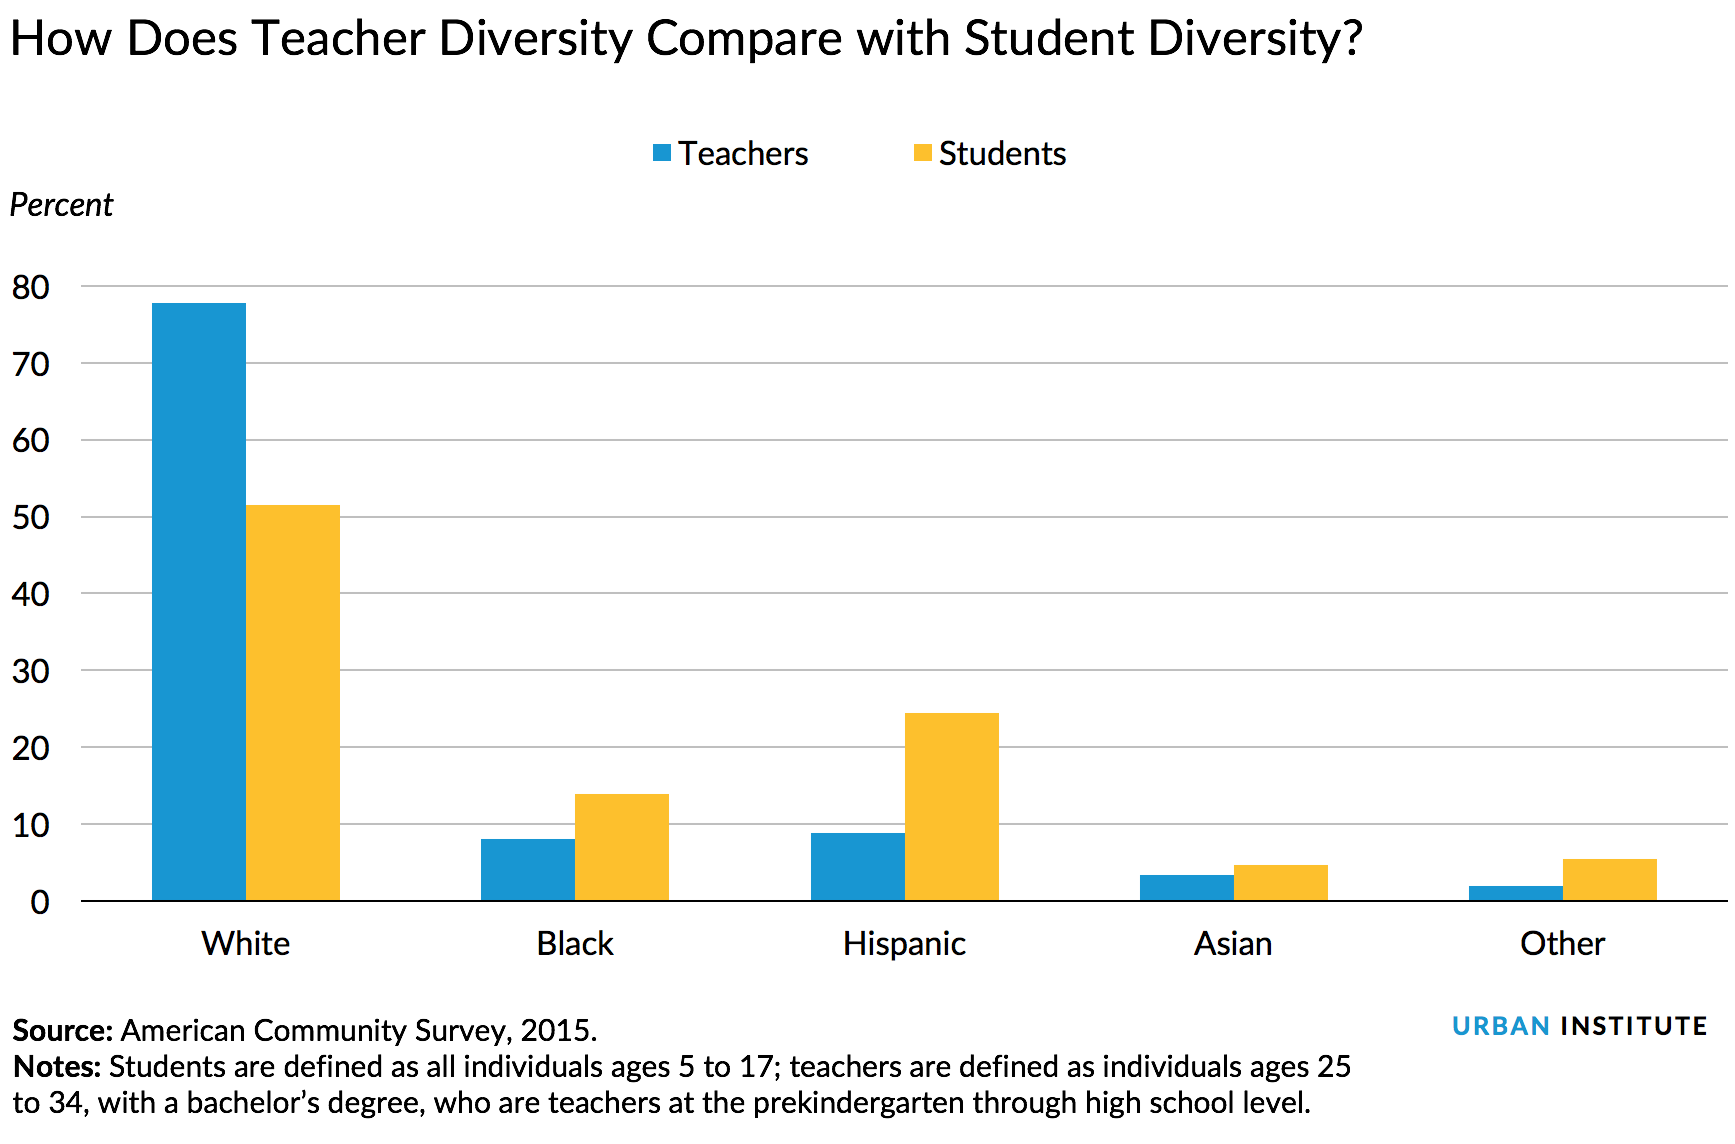 How Does Teacher Diversity Compare with Student Diversity?